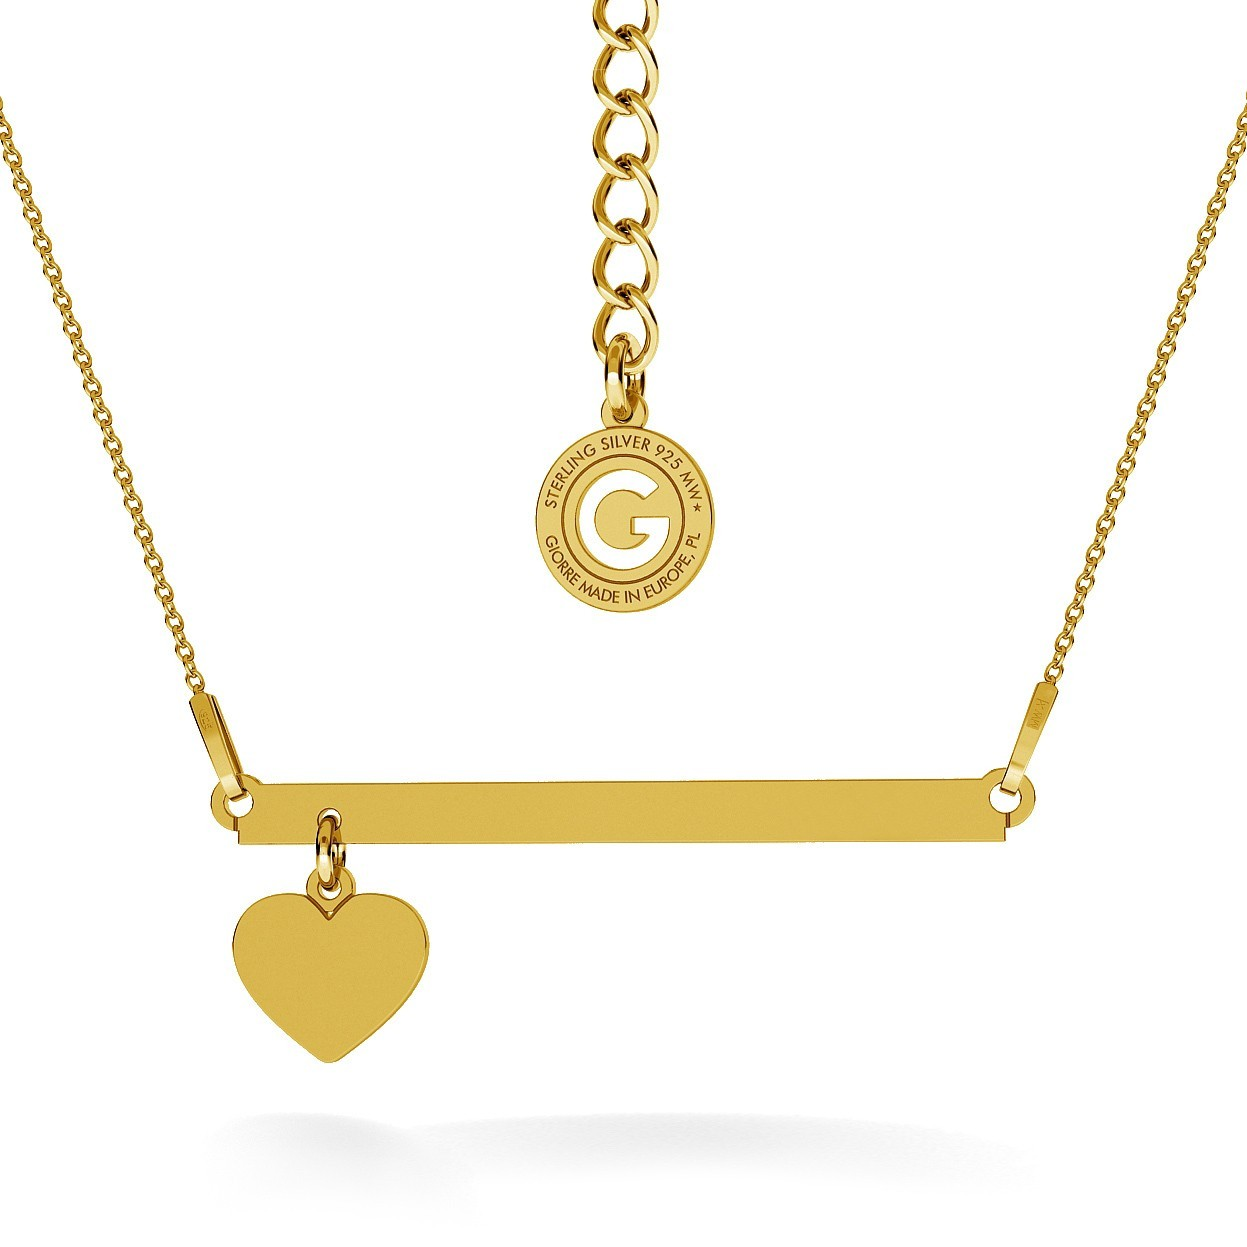 NECKLACE WITH HEART & RECTANGLE BAR, YOUR ENGRAVE, RHODIUM OR 24K / 18K GOLD PLATED